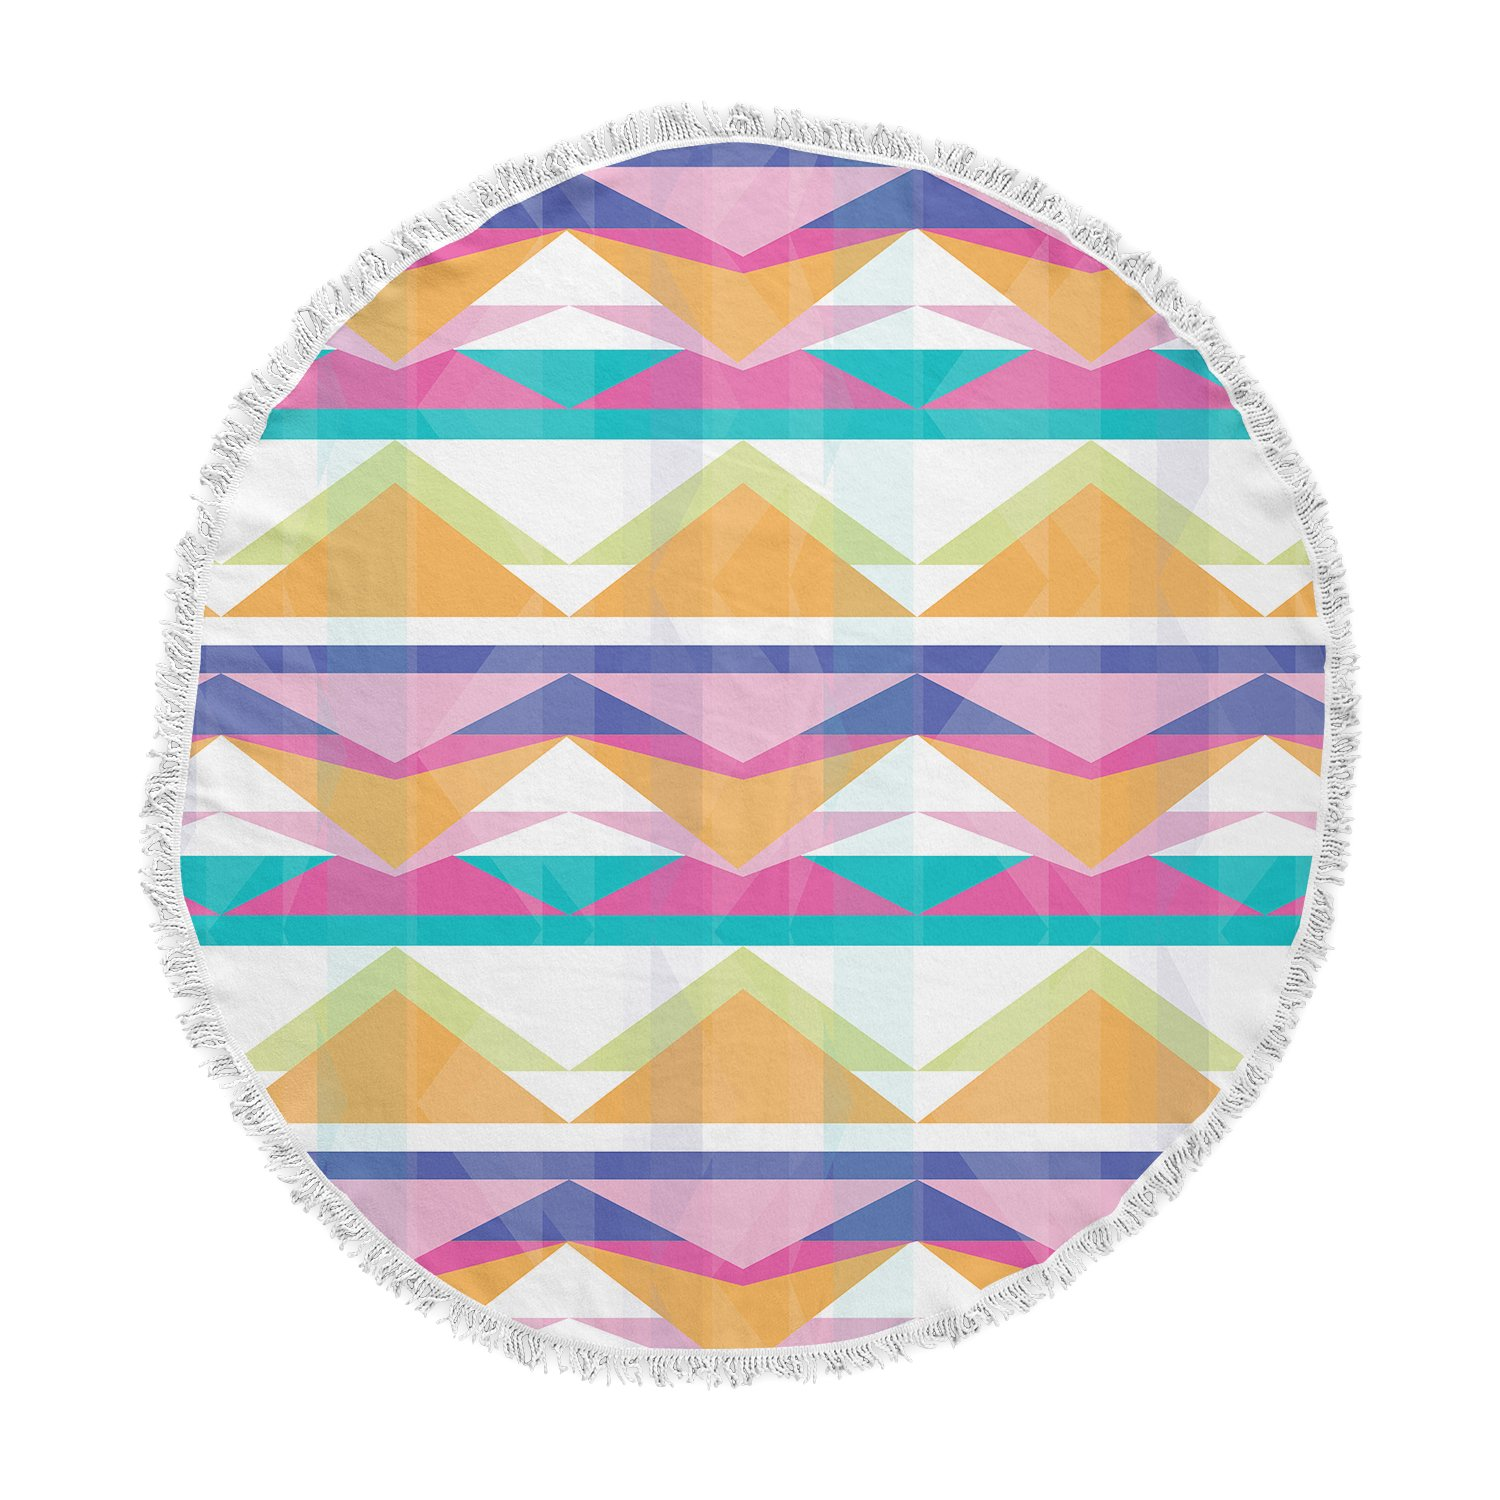 Kess InHouse Miranda MOL Triangle Waves Geometric Pattern Round Beach Towel Blanket